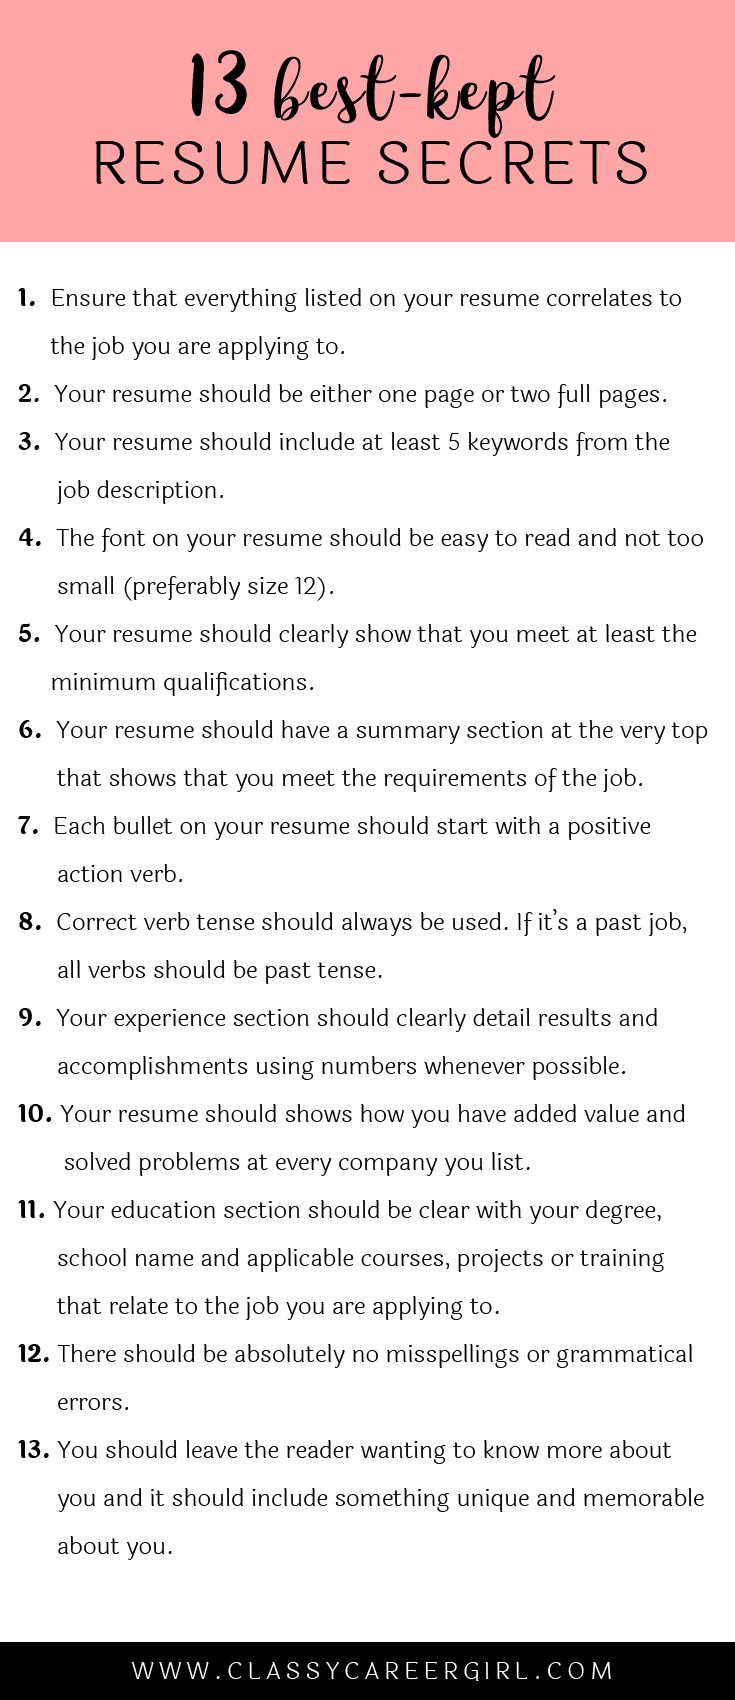 Opposenewapstandardsus  Pleasing  Ideas About Resume On Pinterest  Cv Format Resume Cv And  With Engaging Some Hiring Managers Will Toss Your Resume Out If You Dont Know These  With Adorable Bill Gates Resume Also Barney Stinson Resume In Addition French Resume And Should You Include References On Your Resume As Well As Example Of A Simple Resume Additionally Key Skills On Resume From Pinterestcom With Opposenewapstandardsus  Engaging  Ideas About Resume On Pinterest  Cv Format Resume Cv And  With Adorable Some Hiring Managers Will Toss Your Resume Out If You Dont Know These  And Pleasing Bill Gates Resume Also Barney Stinson Resume In Addition French Resume From Pinterestcom